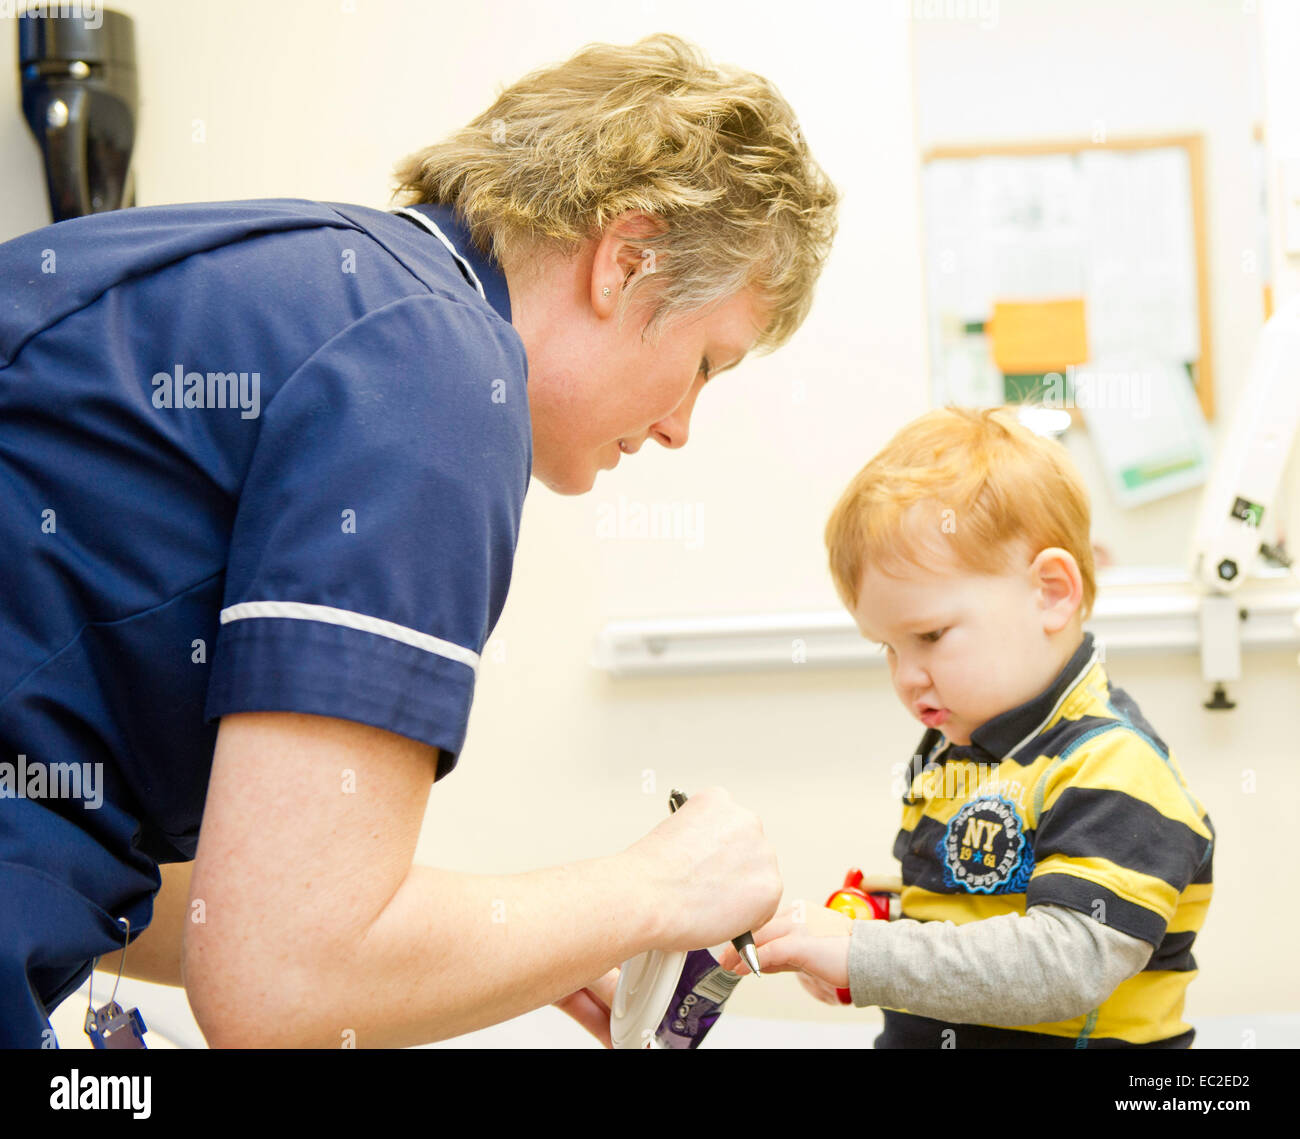 A little boy at the doctors surgery having a check up - Stock Image